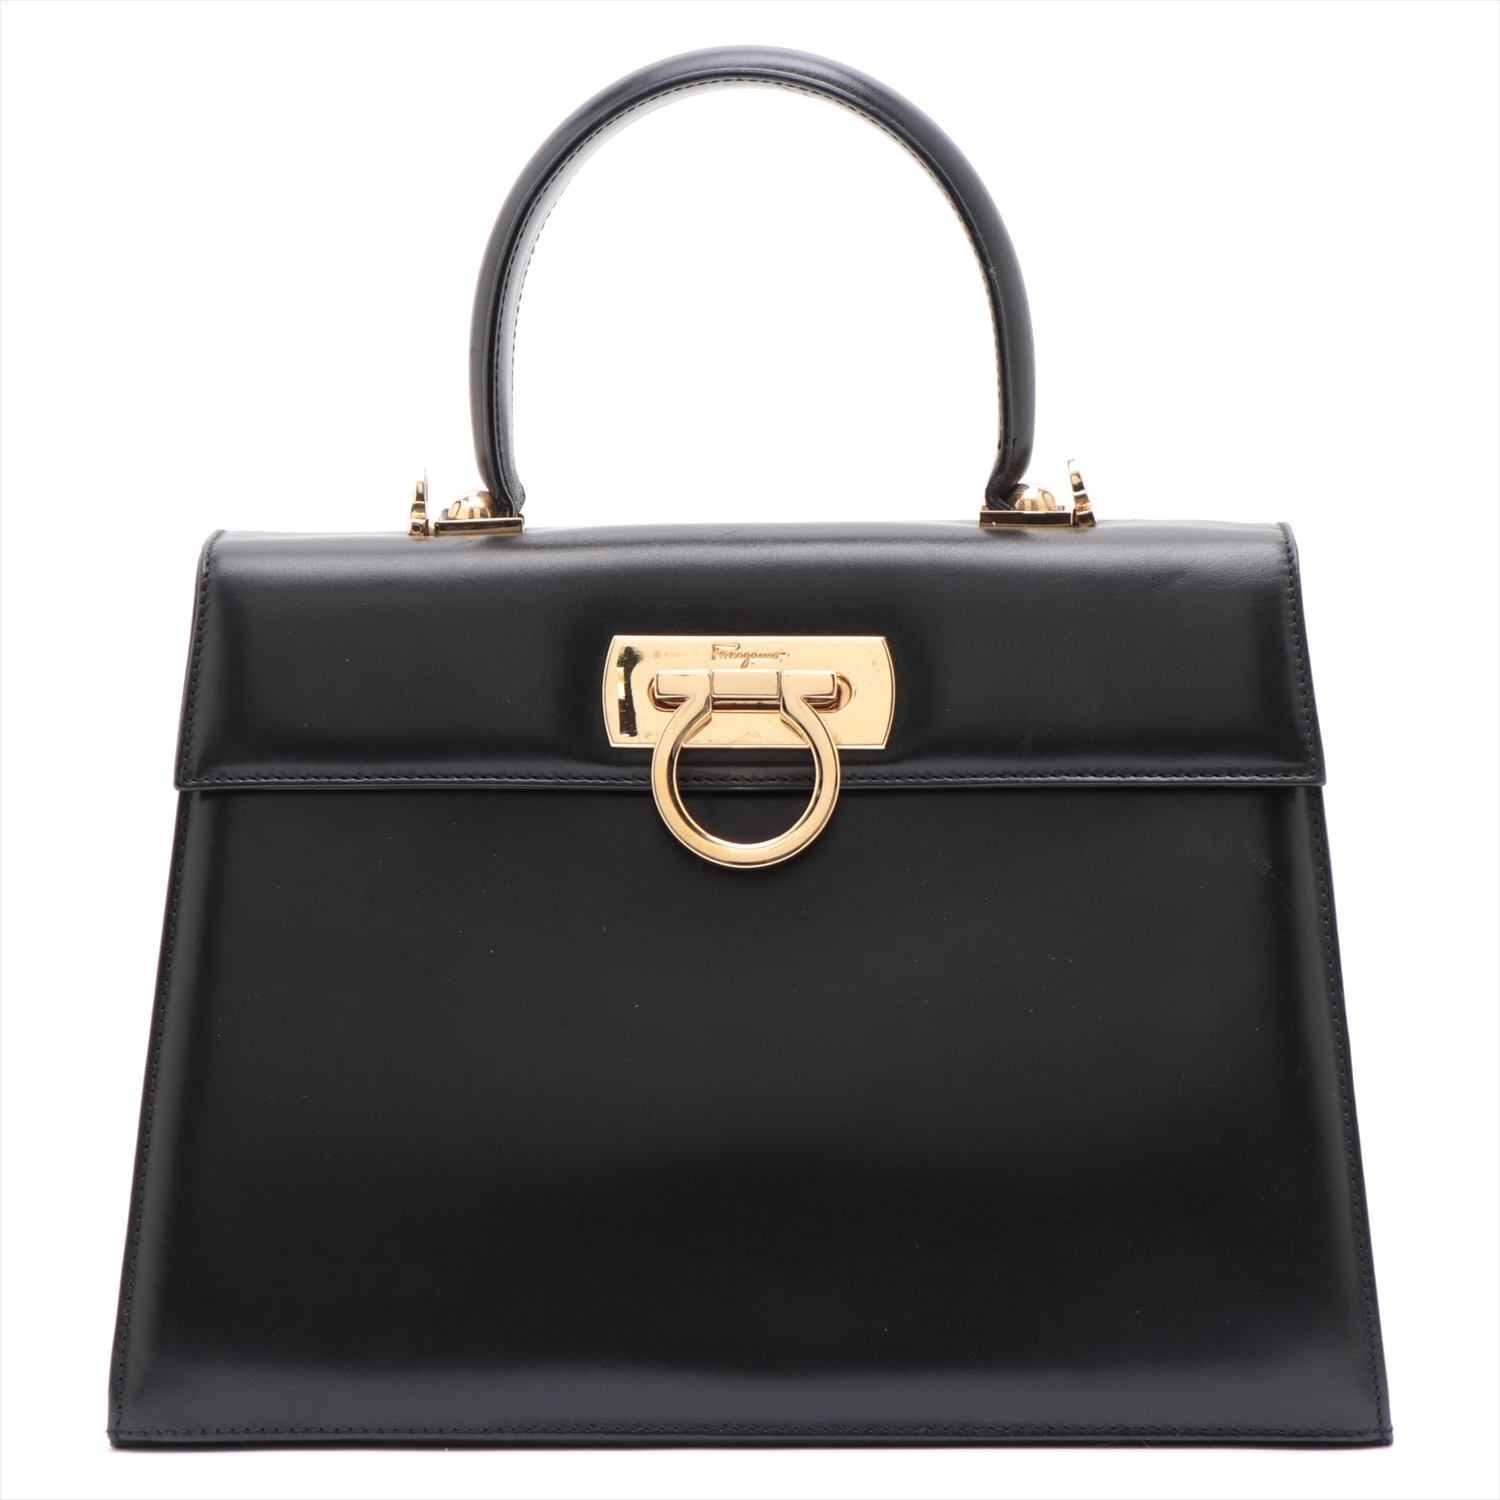 [Used article] Ferragamo Ganchini vintage leather 2WAY handbag black